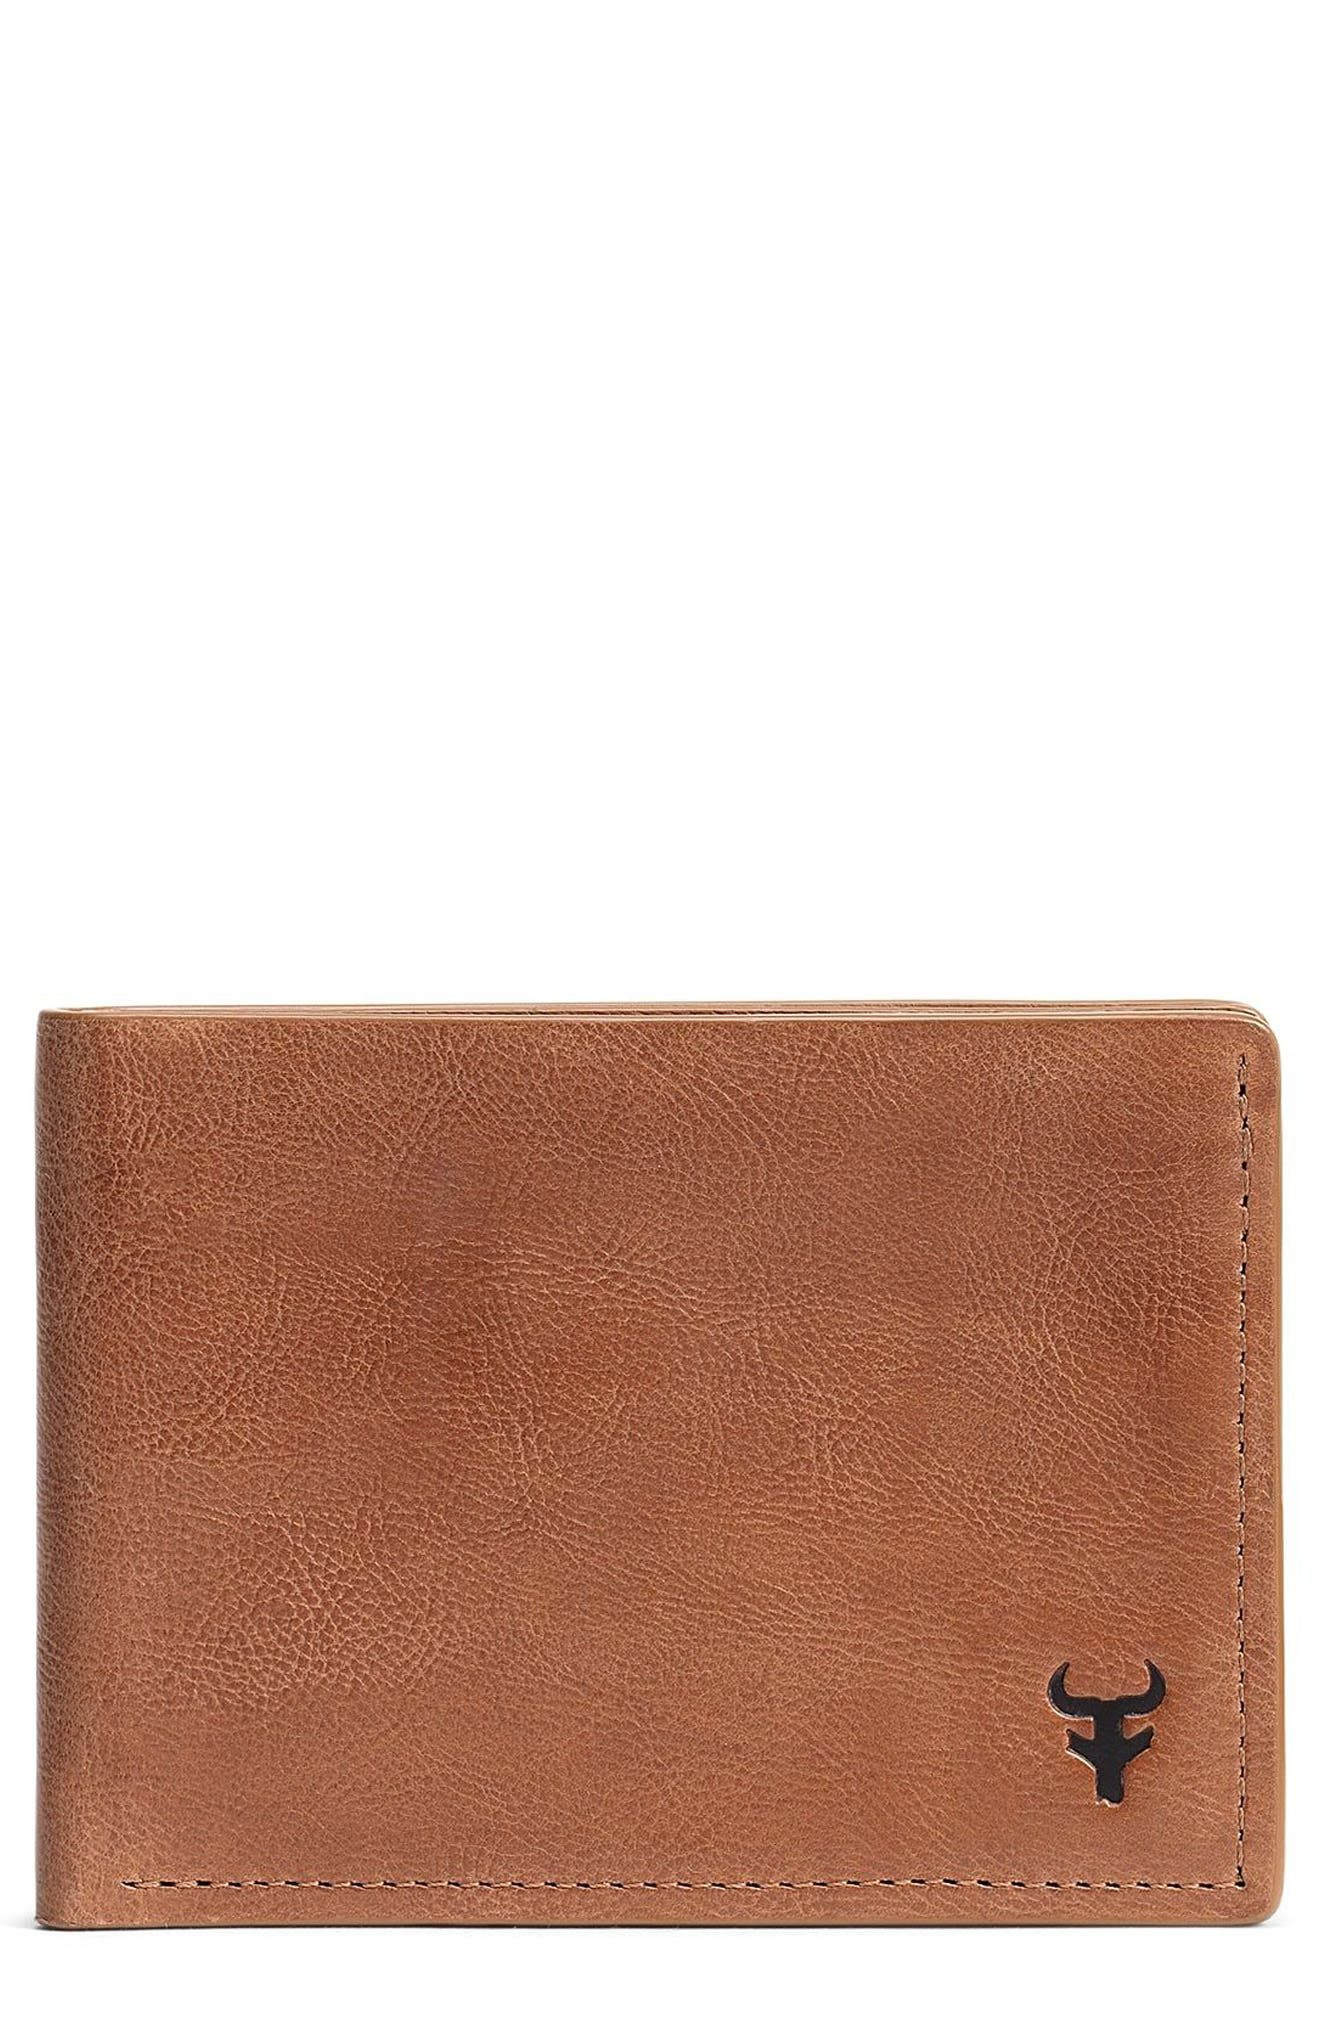 Canyon Super Slim Leather Wallet,                             Main thumbnail 1, color,                             Tan